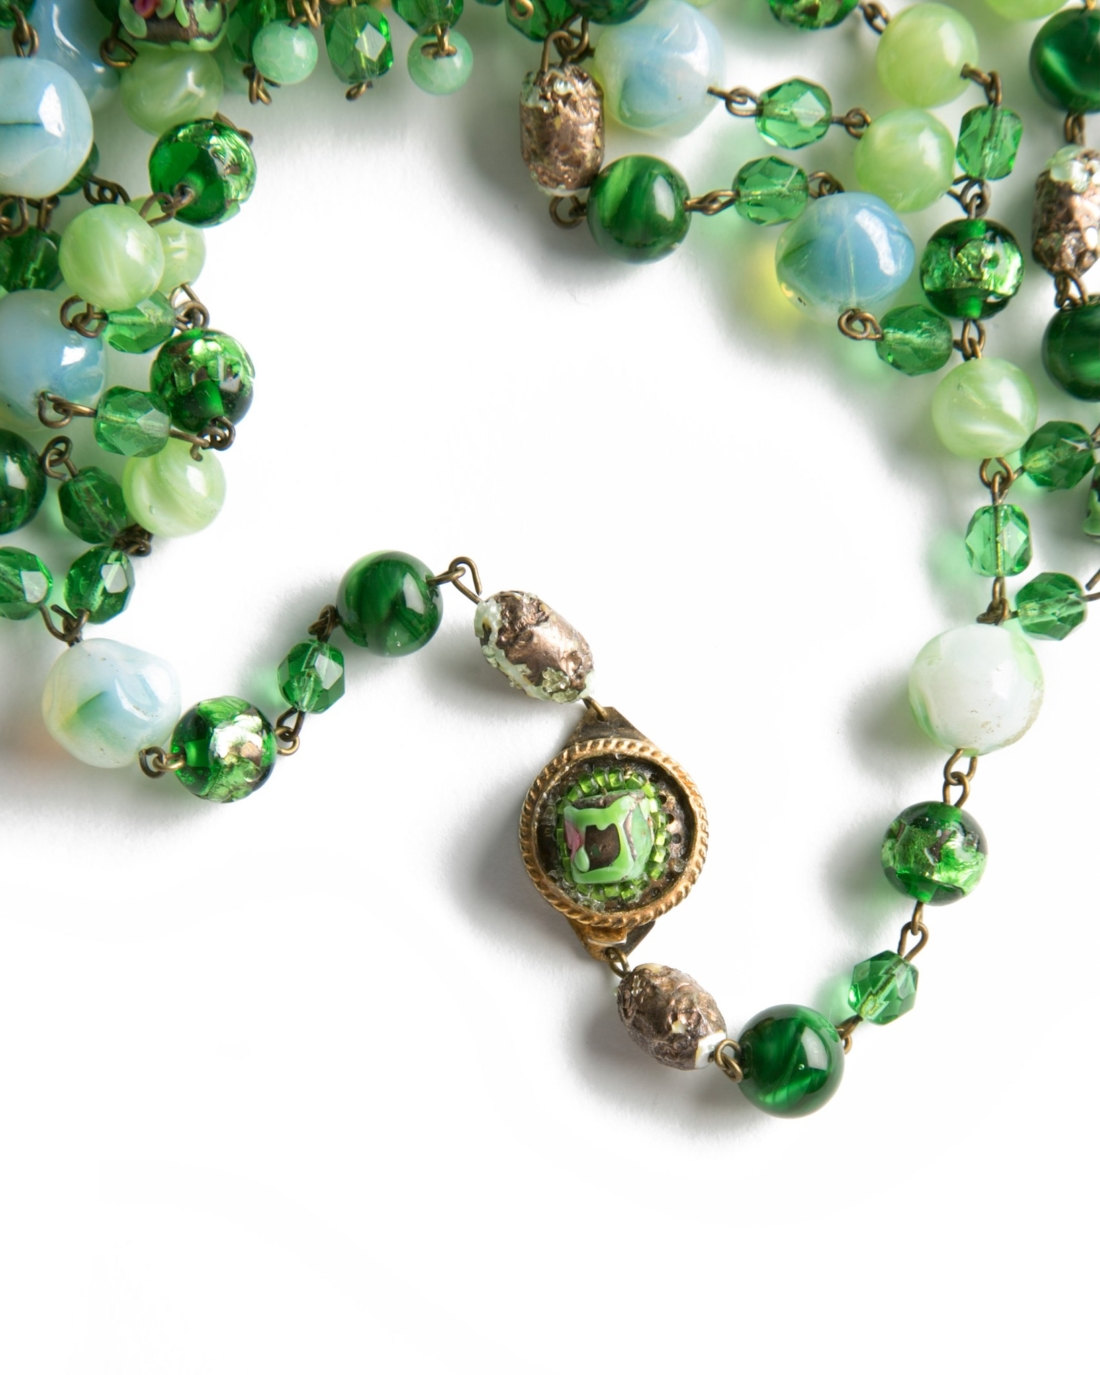 Couture Coppola e Toppo Green Italian Beaded Bib Necklace, circa 1960's